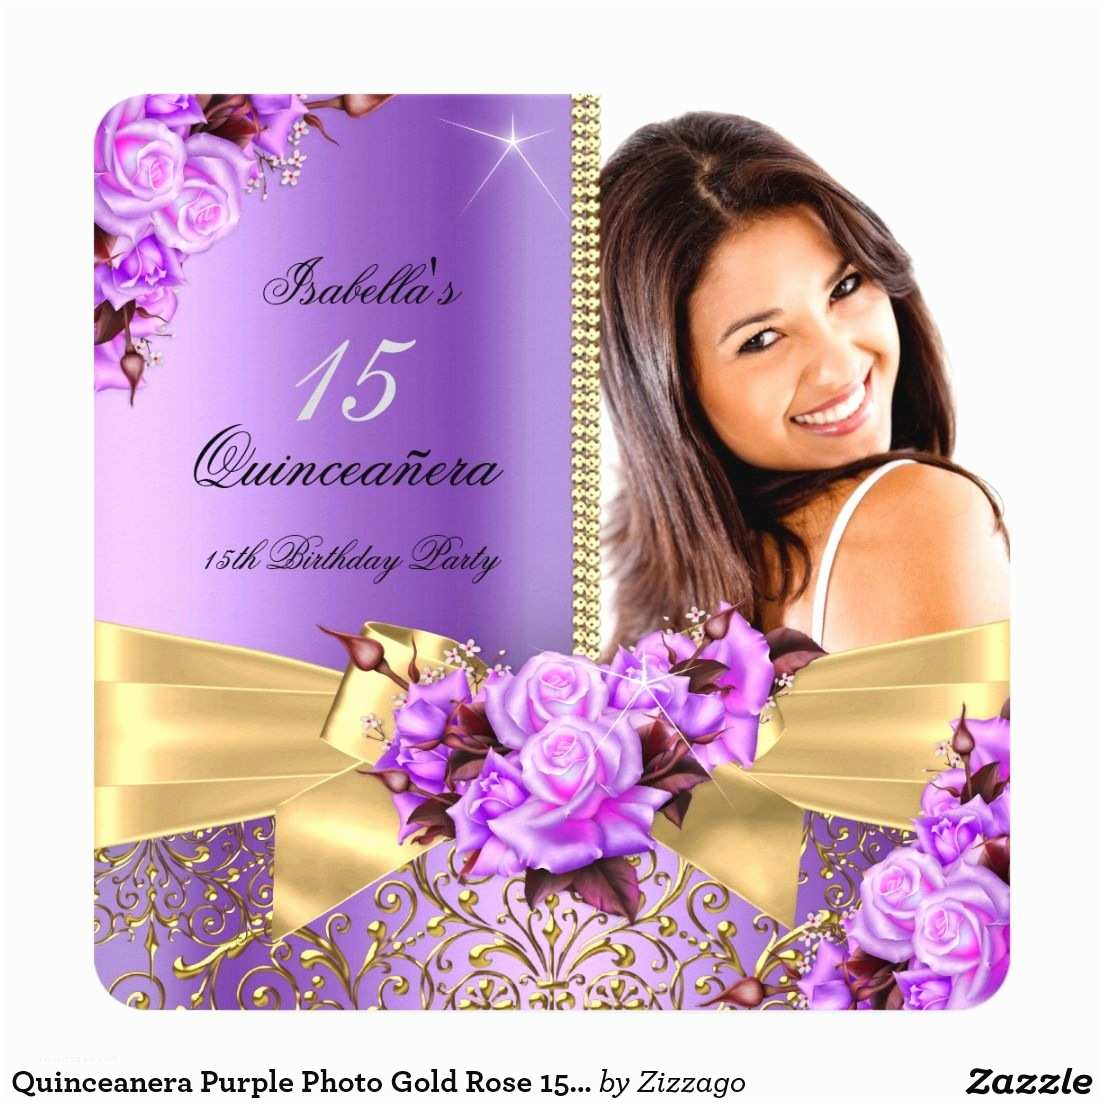 15th Birthday Party Invitations Quinceanera Purple Gold Rose 15th Birthday Card